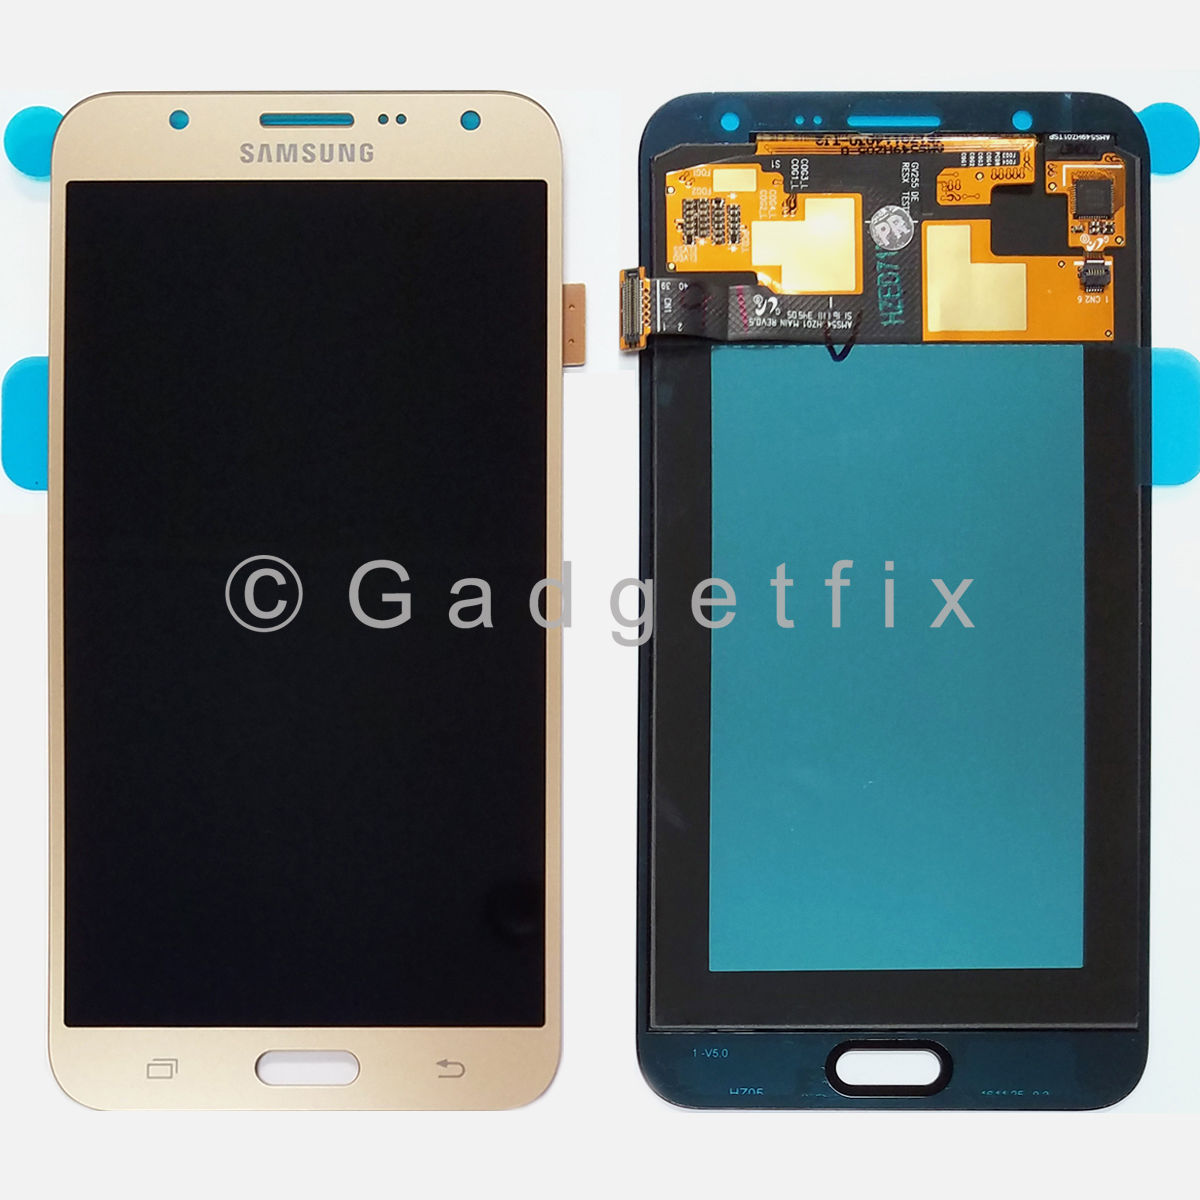 OEM Gold Samsung Galaxy J7 J700M J700H J700T LCD Display Touch Screen Digitizer